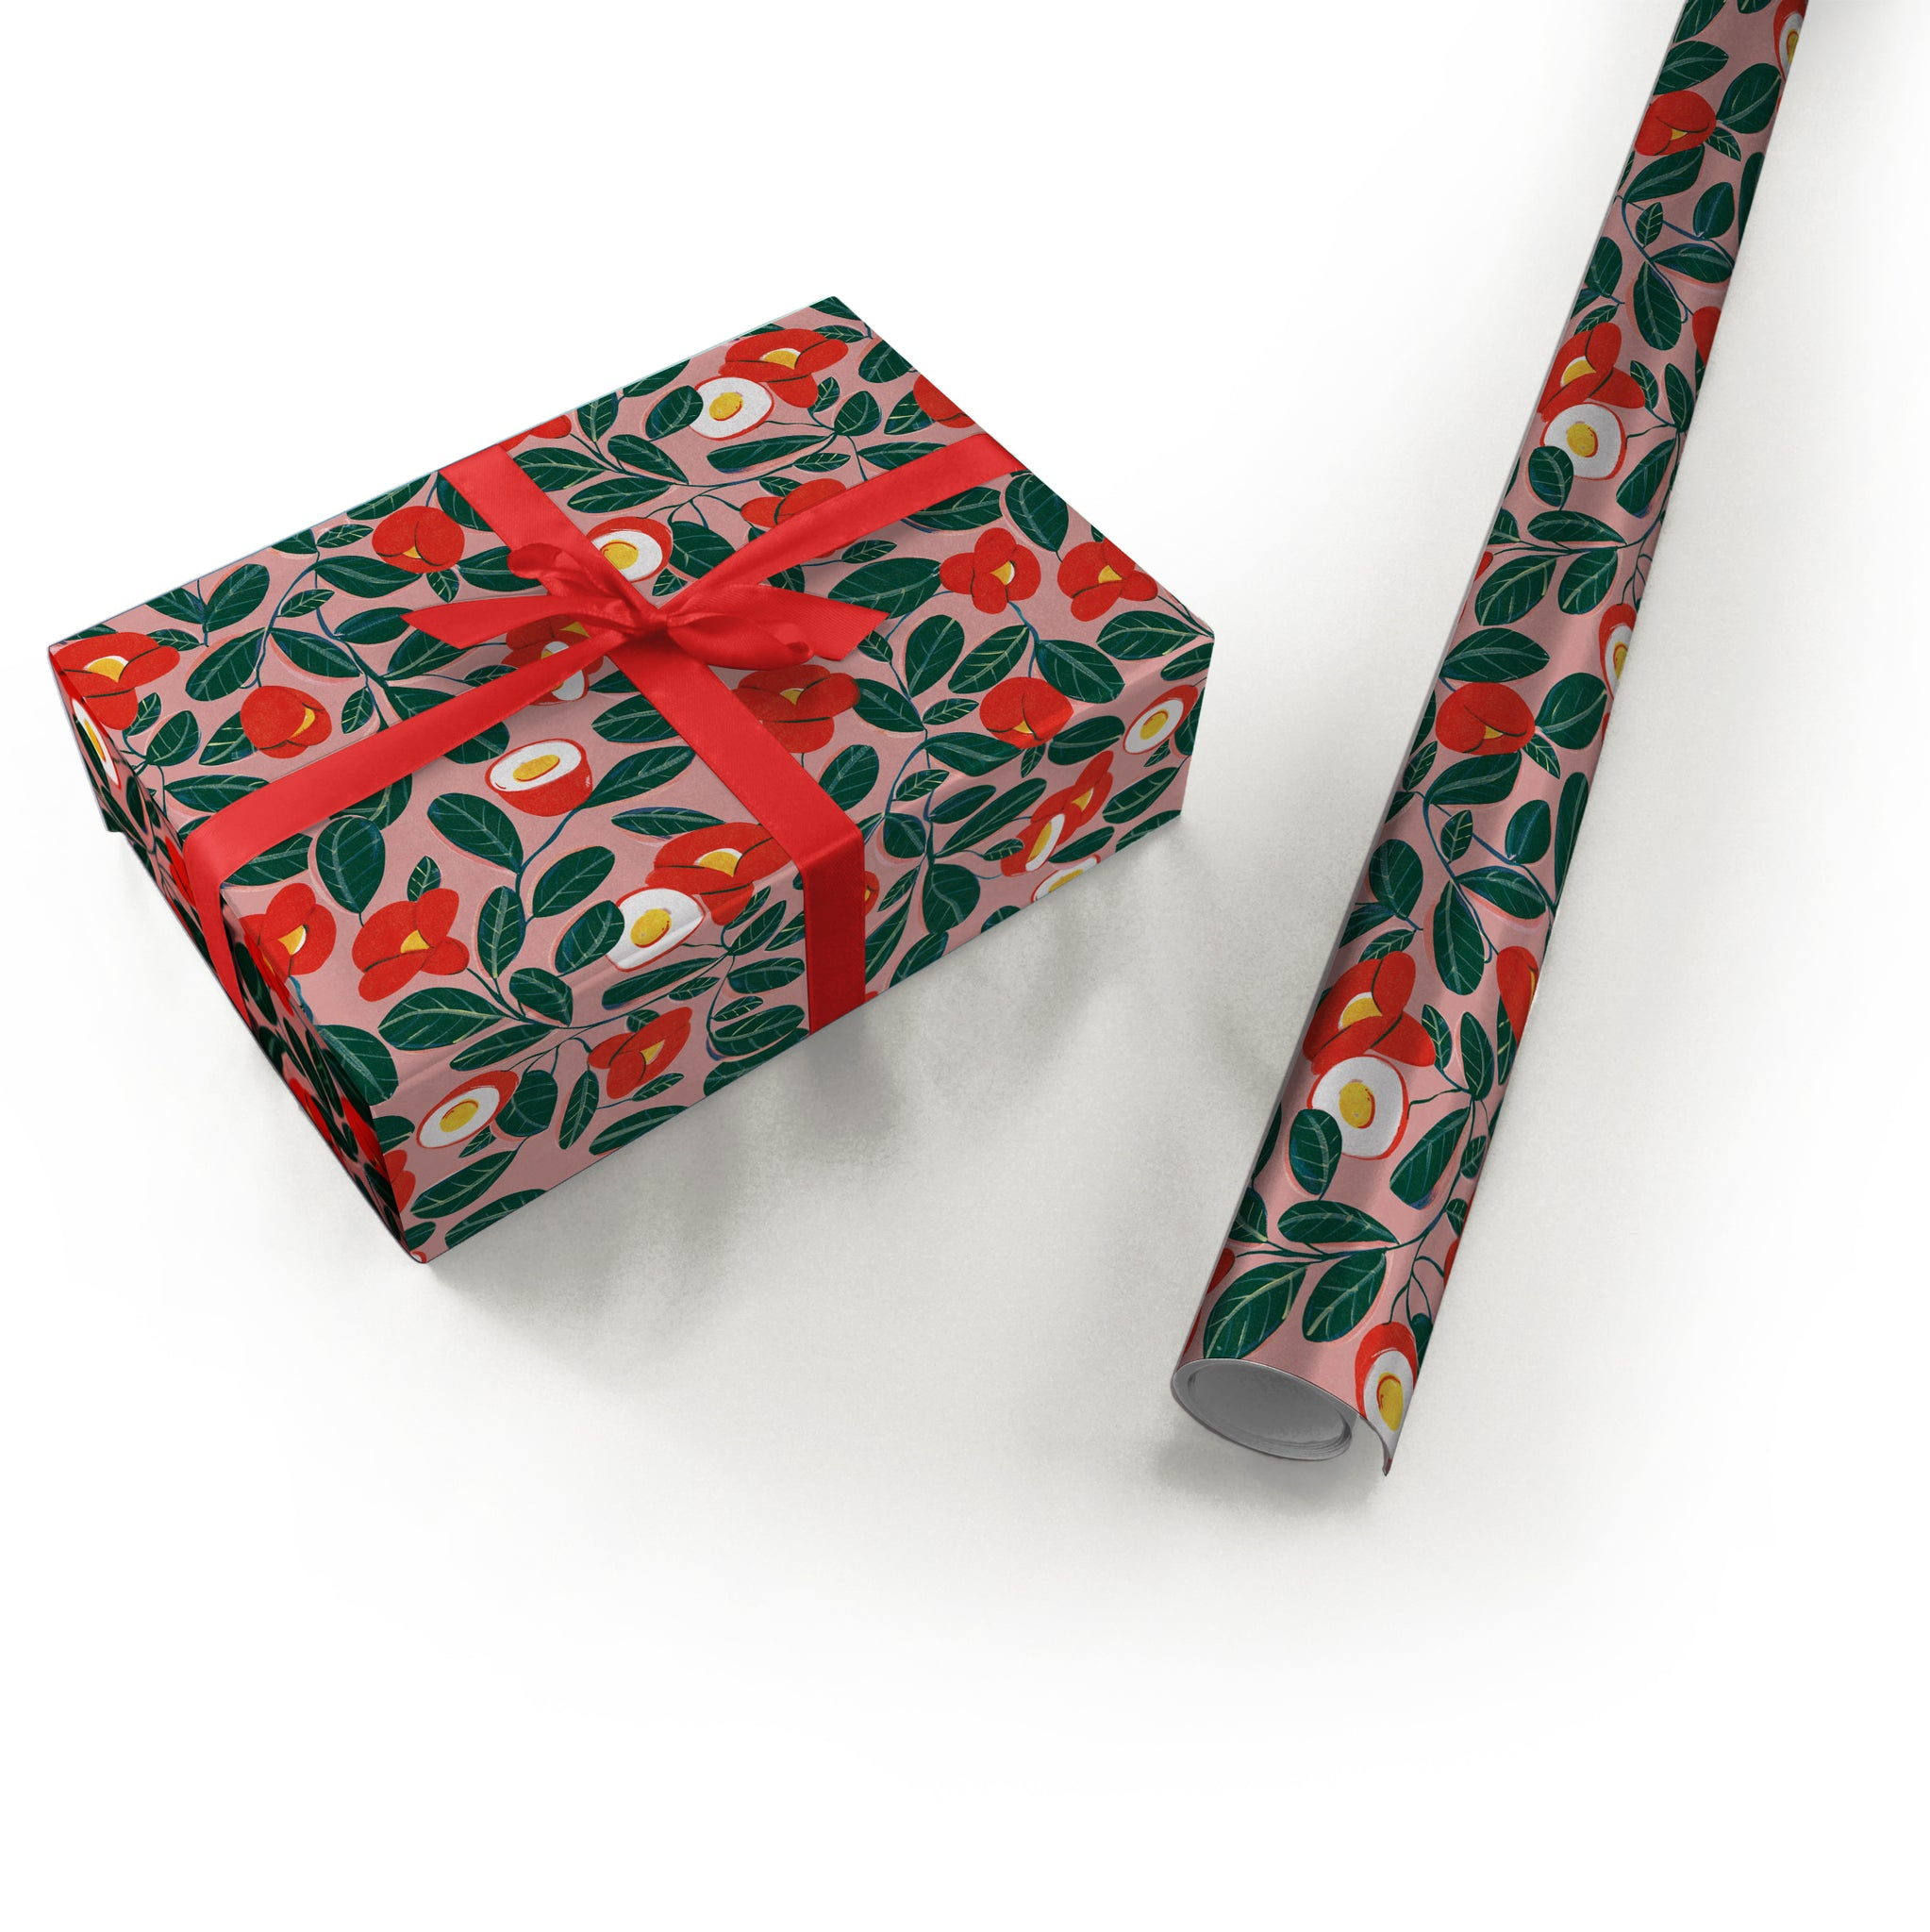 "Wrapping Paper - Ana Sanfelippo Roll (2 sheets) - 27"" x 39"" (Pink)"